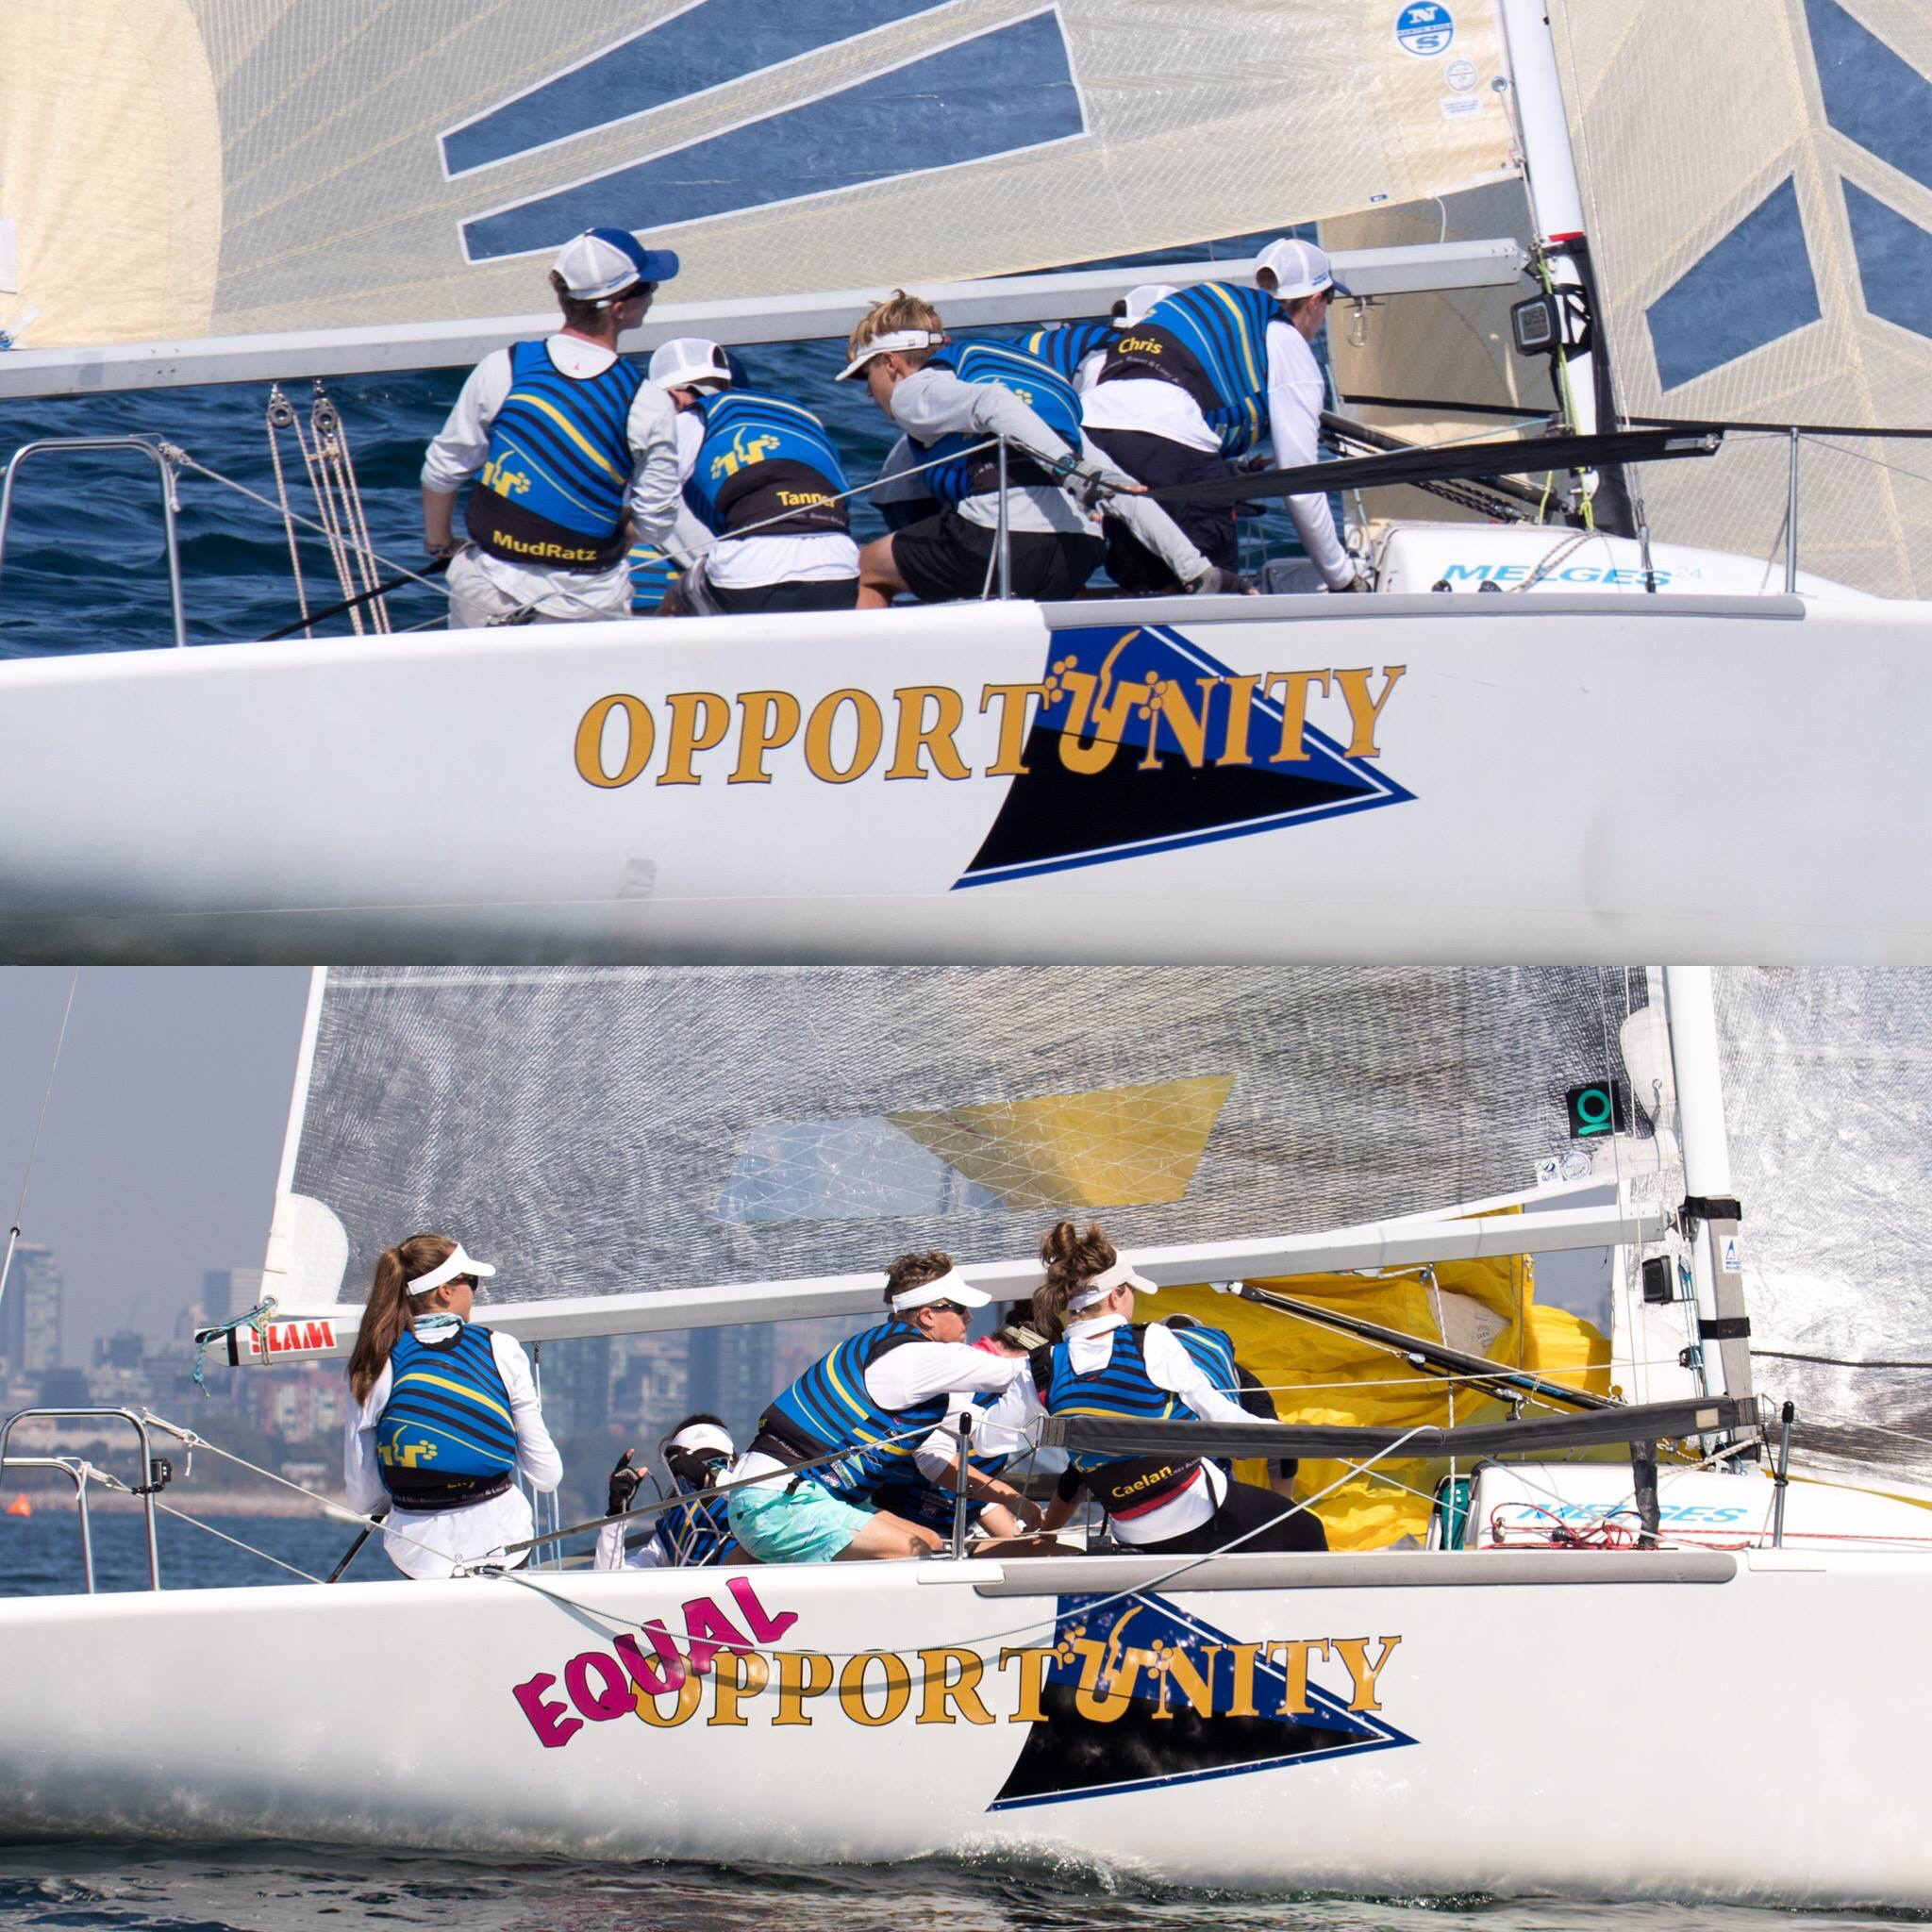 """""""Not only has being a youth sailor on a Melges 24 given us opportunities to sail against some of the best pro sailors in the world, we have also been able to create friendships with tons of people,""""  said Lily Flack, helm of  MudRatz EQUAL OPPORTUNITY.   The  Velocitek Award (ProStart)  for the  Most Inspiring Team  went to  TEAM MUDRATZ  out of Stonington/Mystic, Connecticut. Two high school teams of boys and girls have been training for a couple seasons and were right in the mix at the Canadian Nationals with a boat finishing near mid-fleet in the Tour standings.   """"It's the perfect blend between speed and difficulty to sail. It pushes the sailor to go faster, and it's a blast!"""" -  Peter Cronin Helm,  MUDRATZ OPPORTUNITY"""